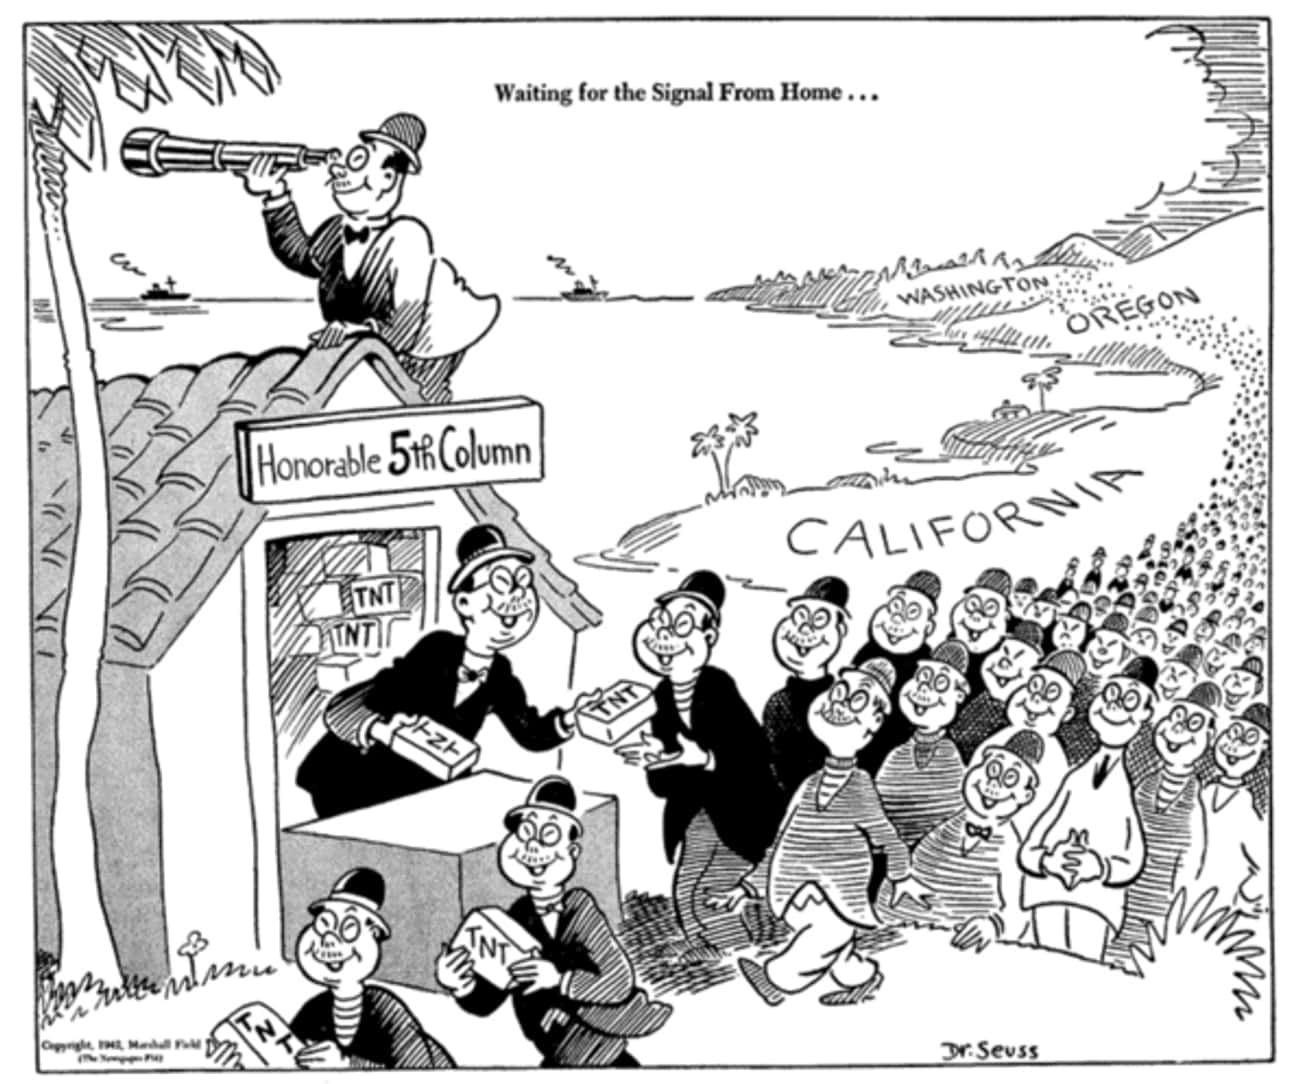 Seuss Was Hired To Create Offensive Anti-Japanese Propaganda During The Second World War